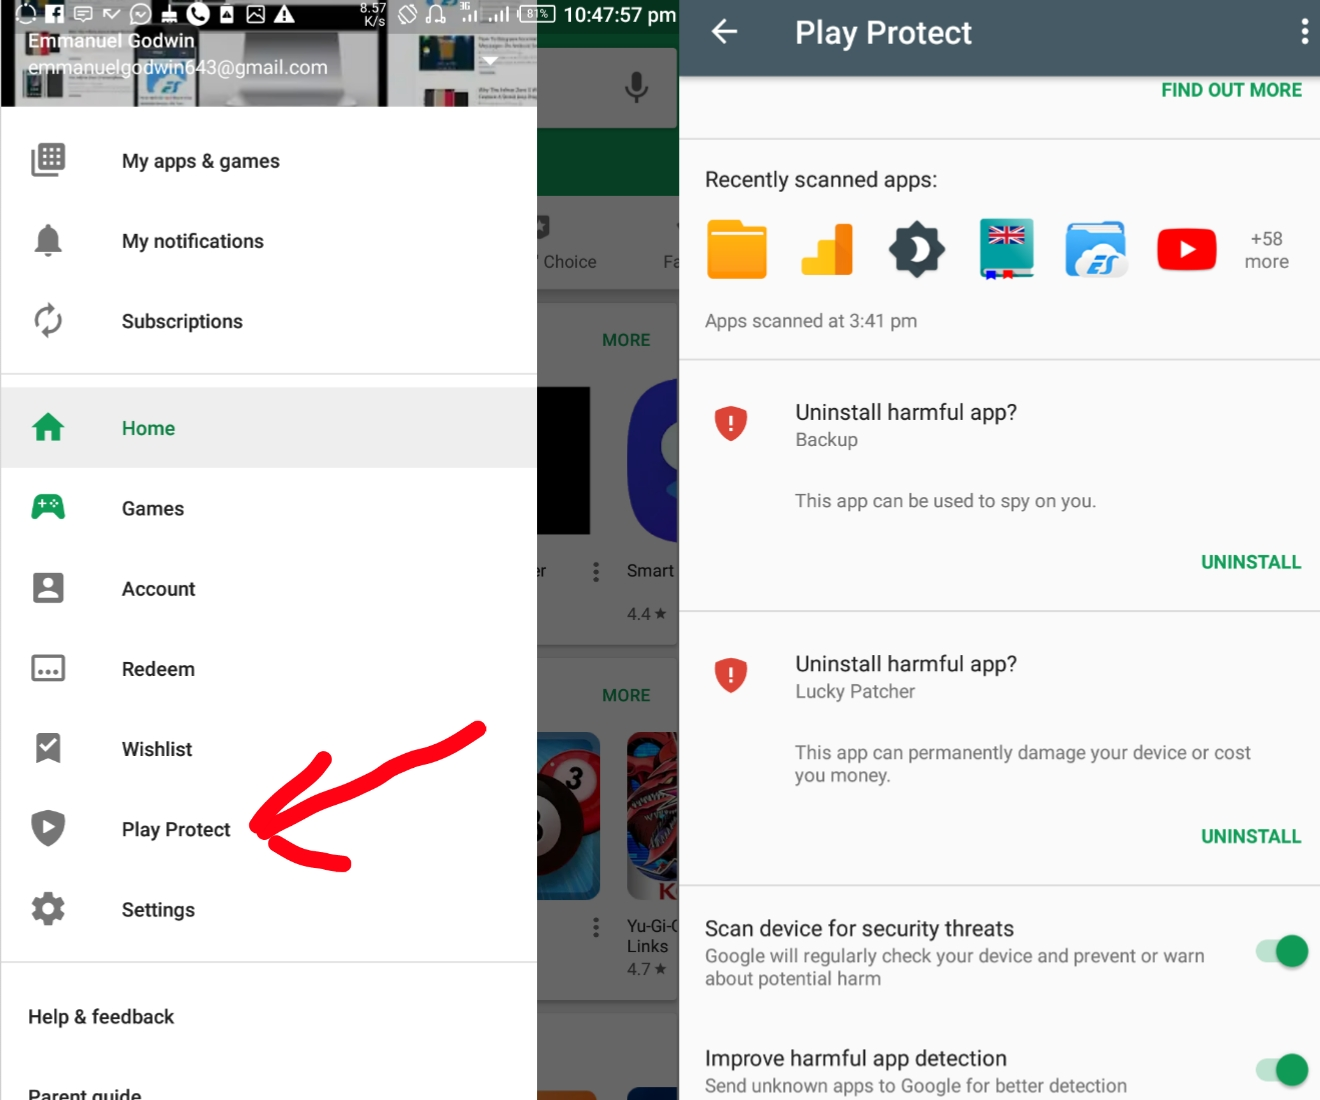 How to activate Google Play Protect